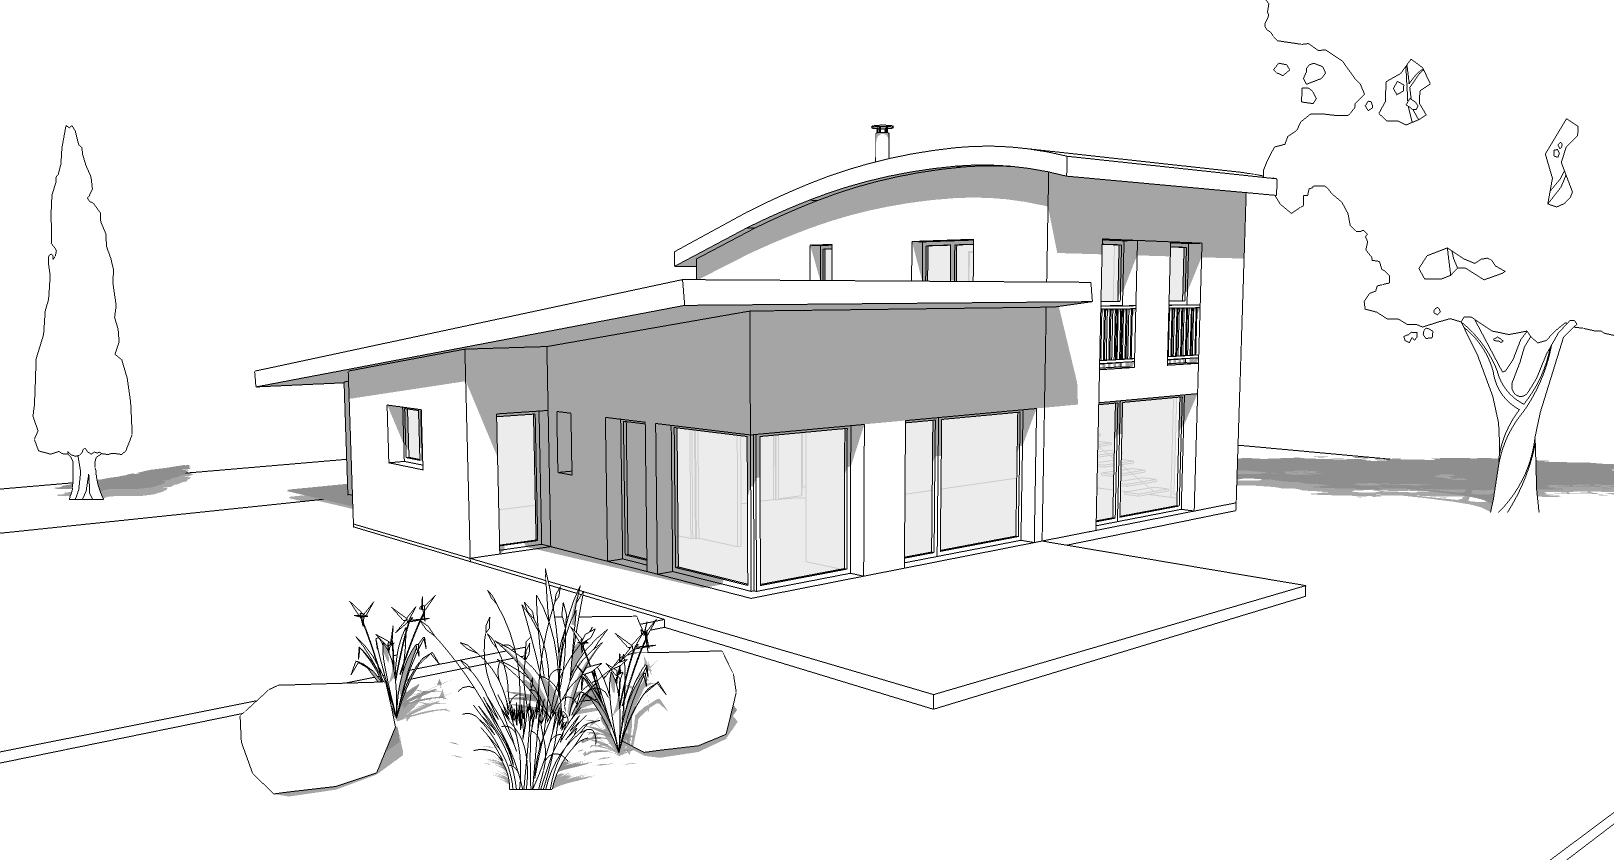 Plan de maison moderne toit zinc -VIDEO